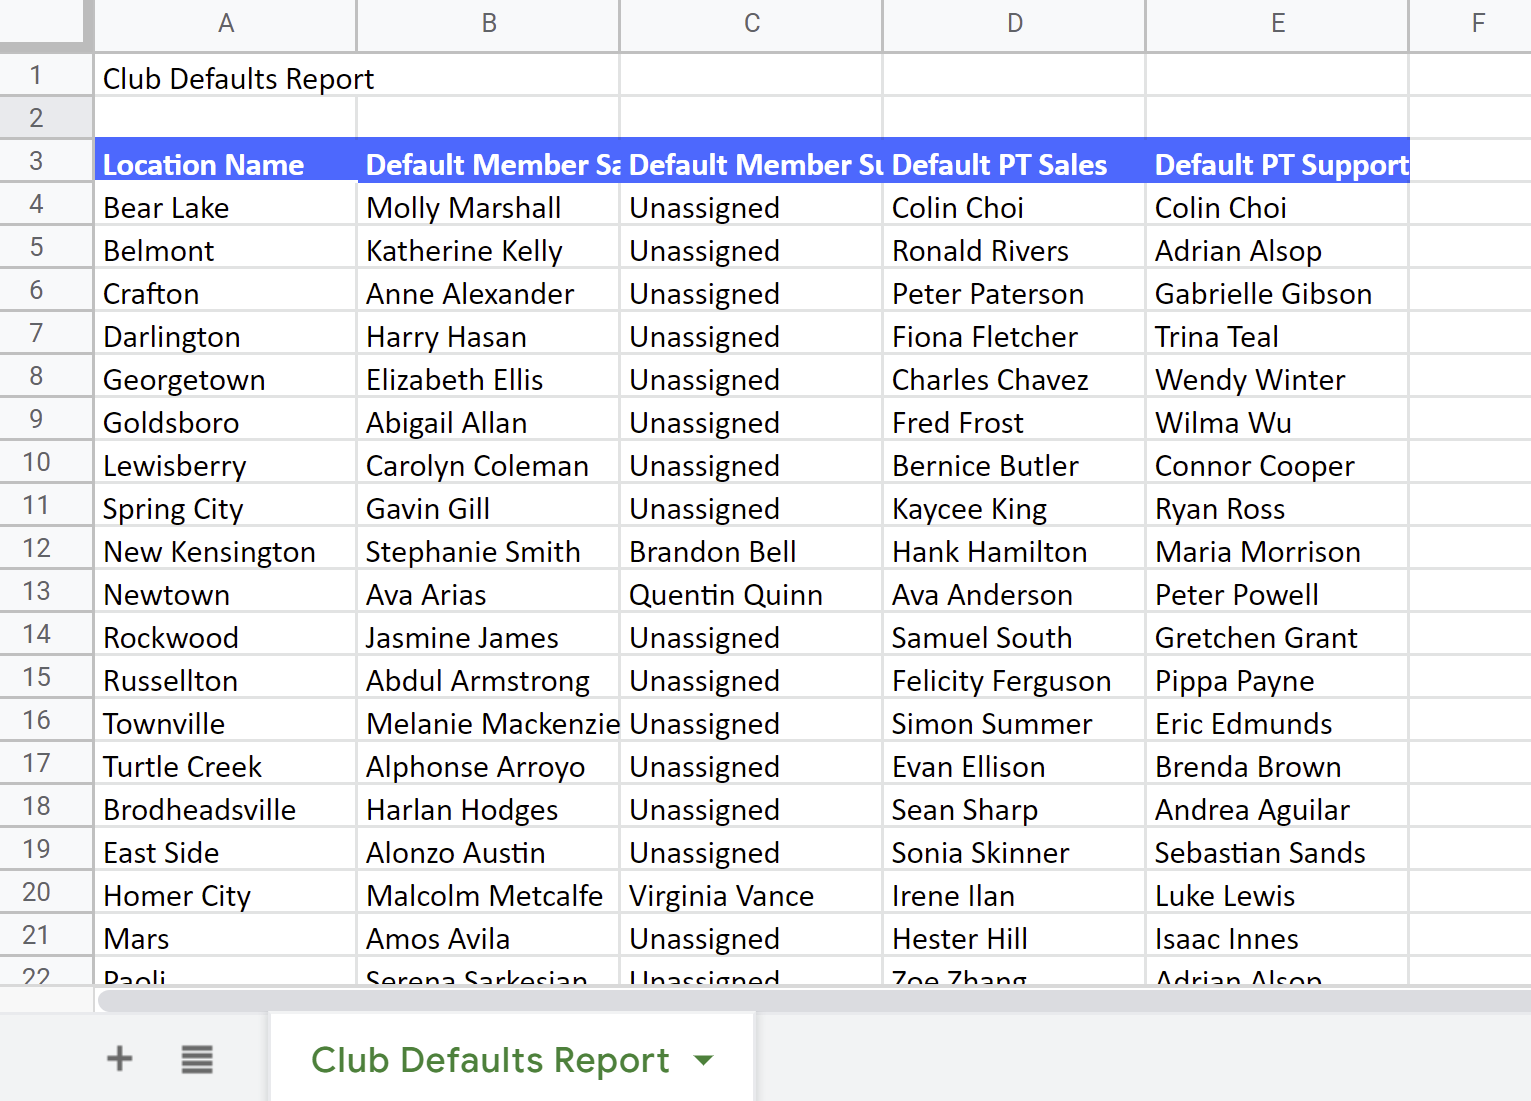 Club Defaults Report